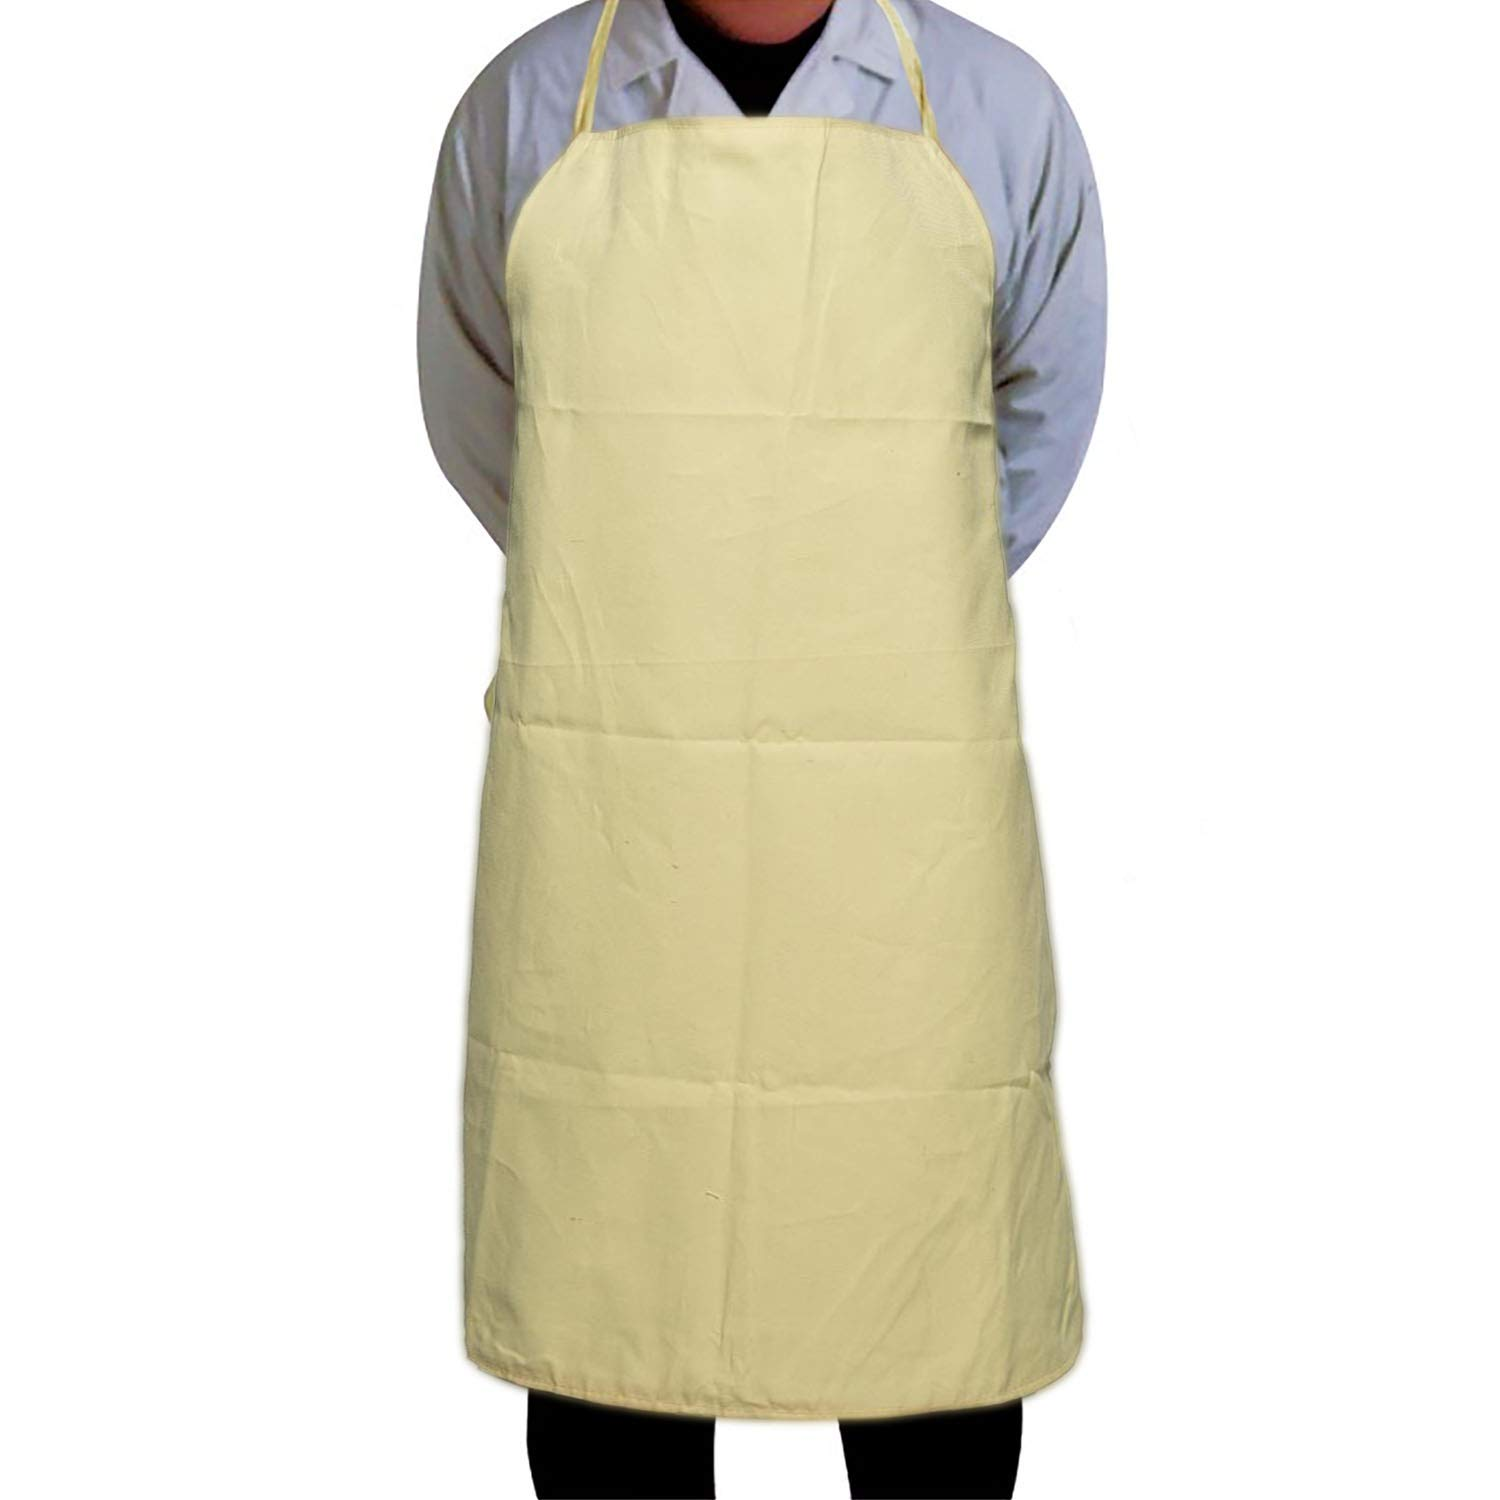 Phoenixfly99 Yellow Kevlar Mesh Bib Style Cut and Heat Resistant Welding Apron Superior Heavy Safety Apparel Splash Proof Clothes For Woodwoking Work Aprons 37'' Length x 27'' Width